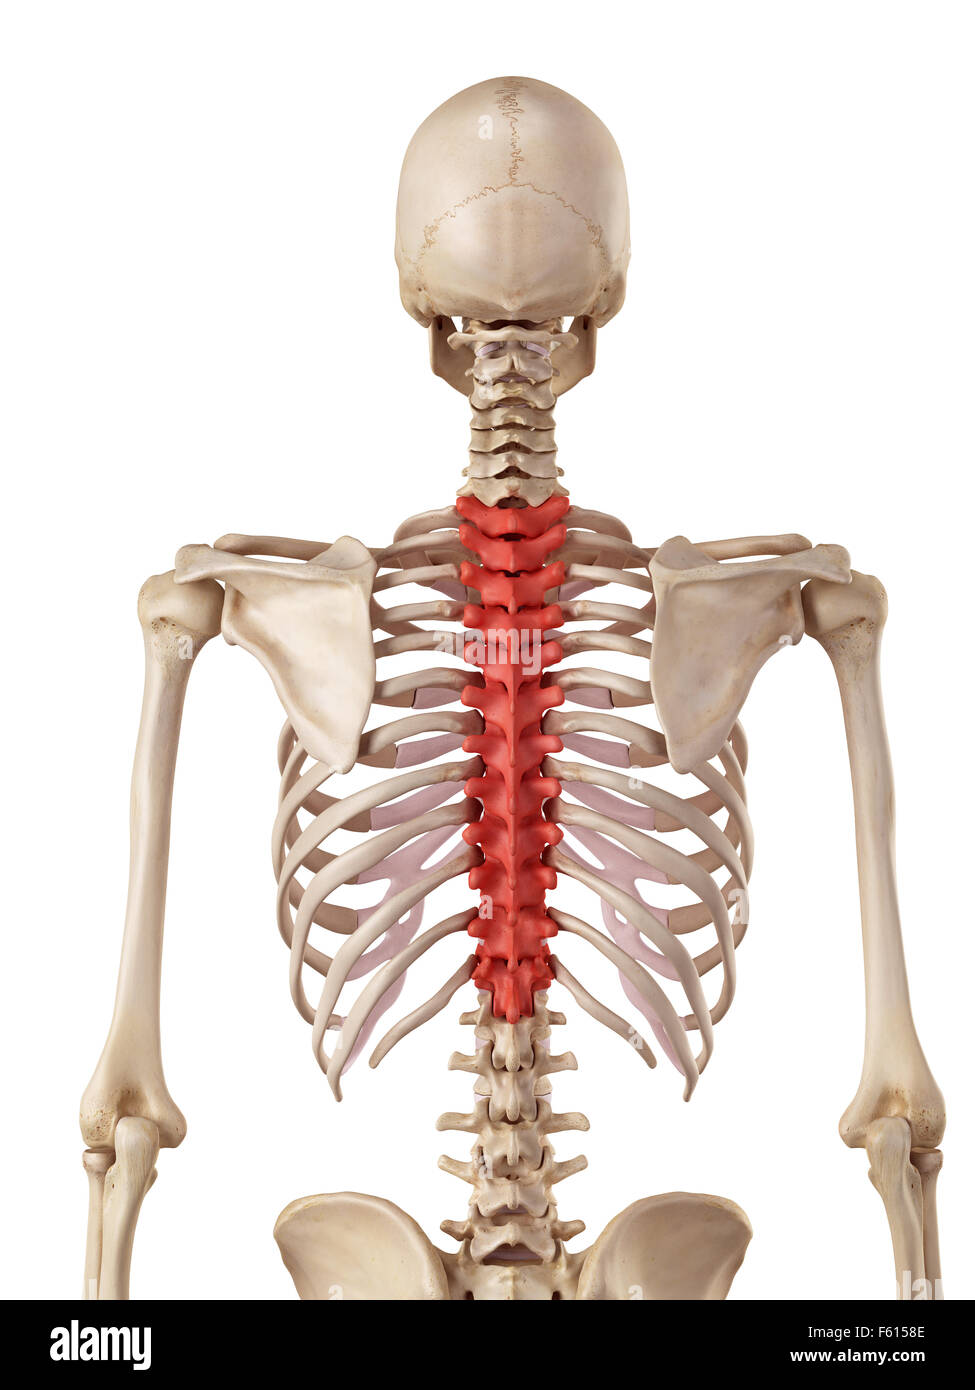 Thoracic Vertebrae Stock Photos Thoracic Vertebrae Stock Images